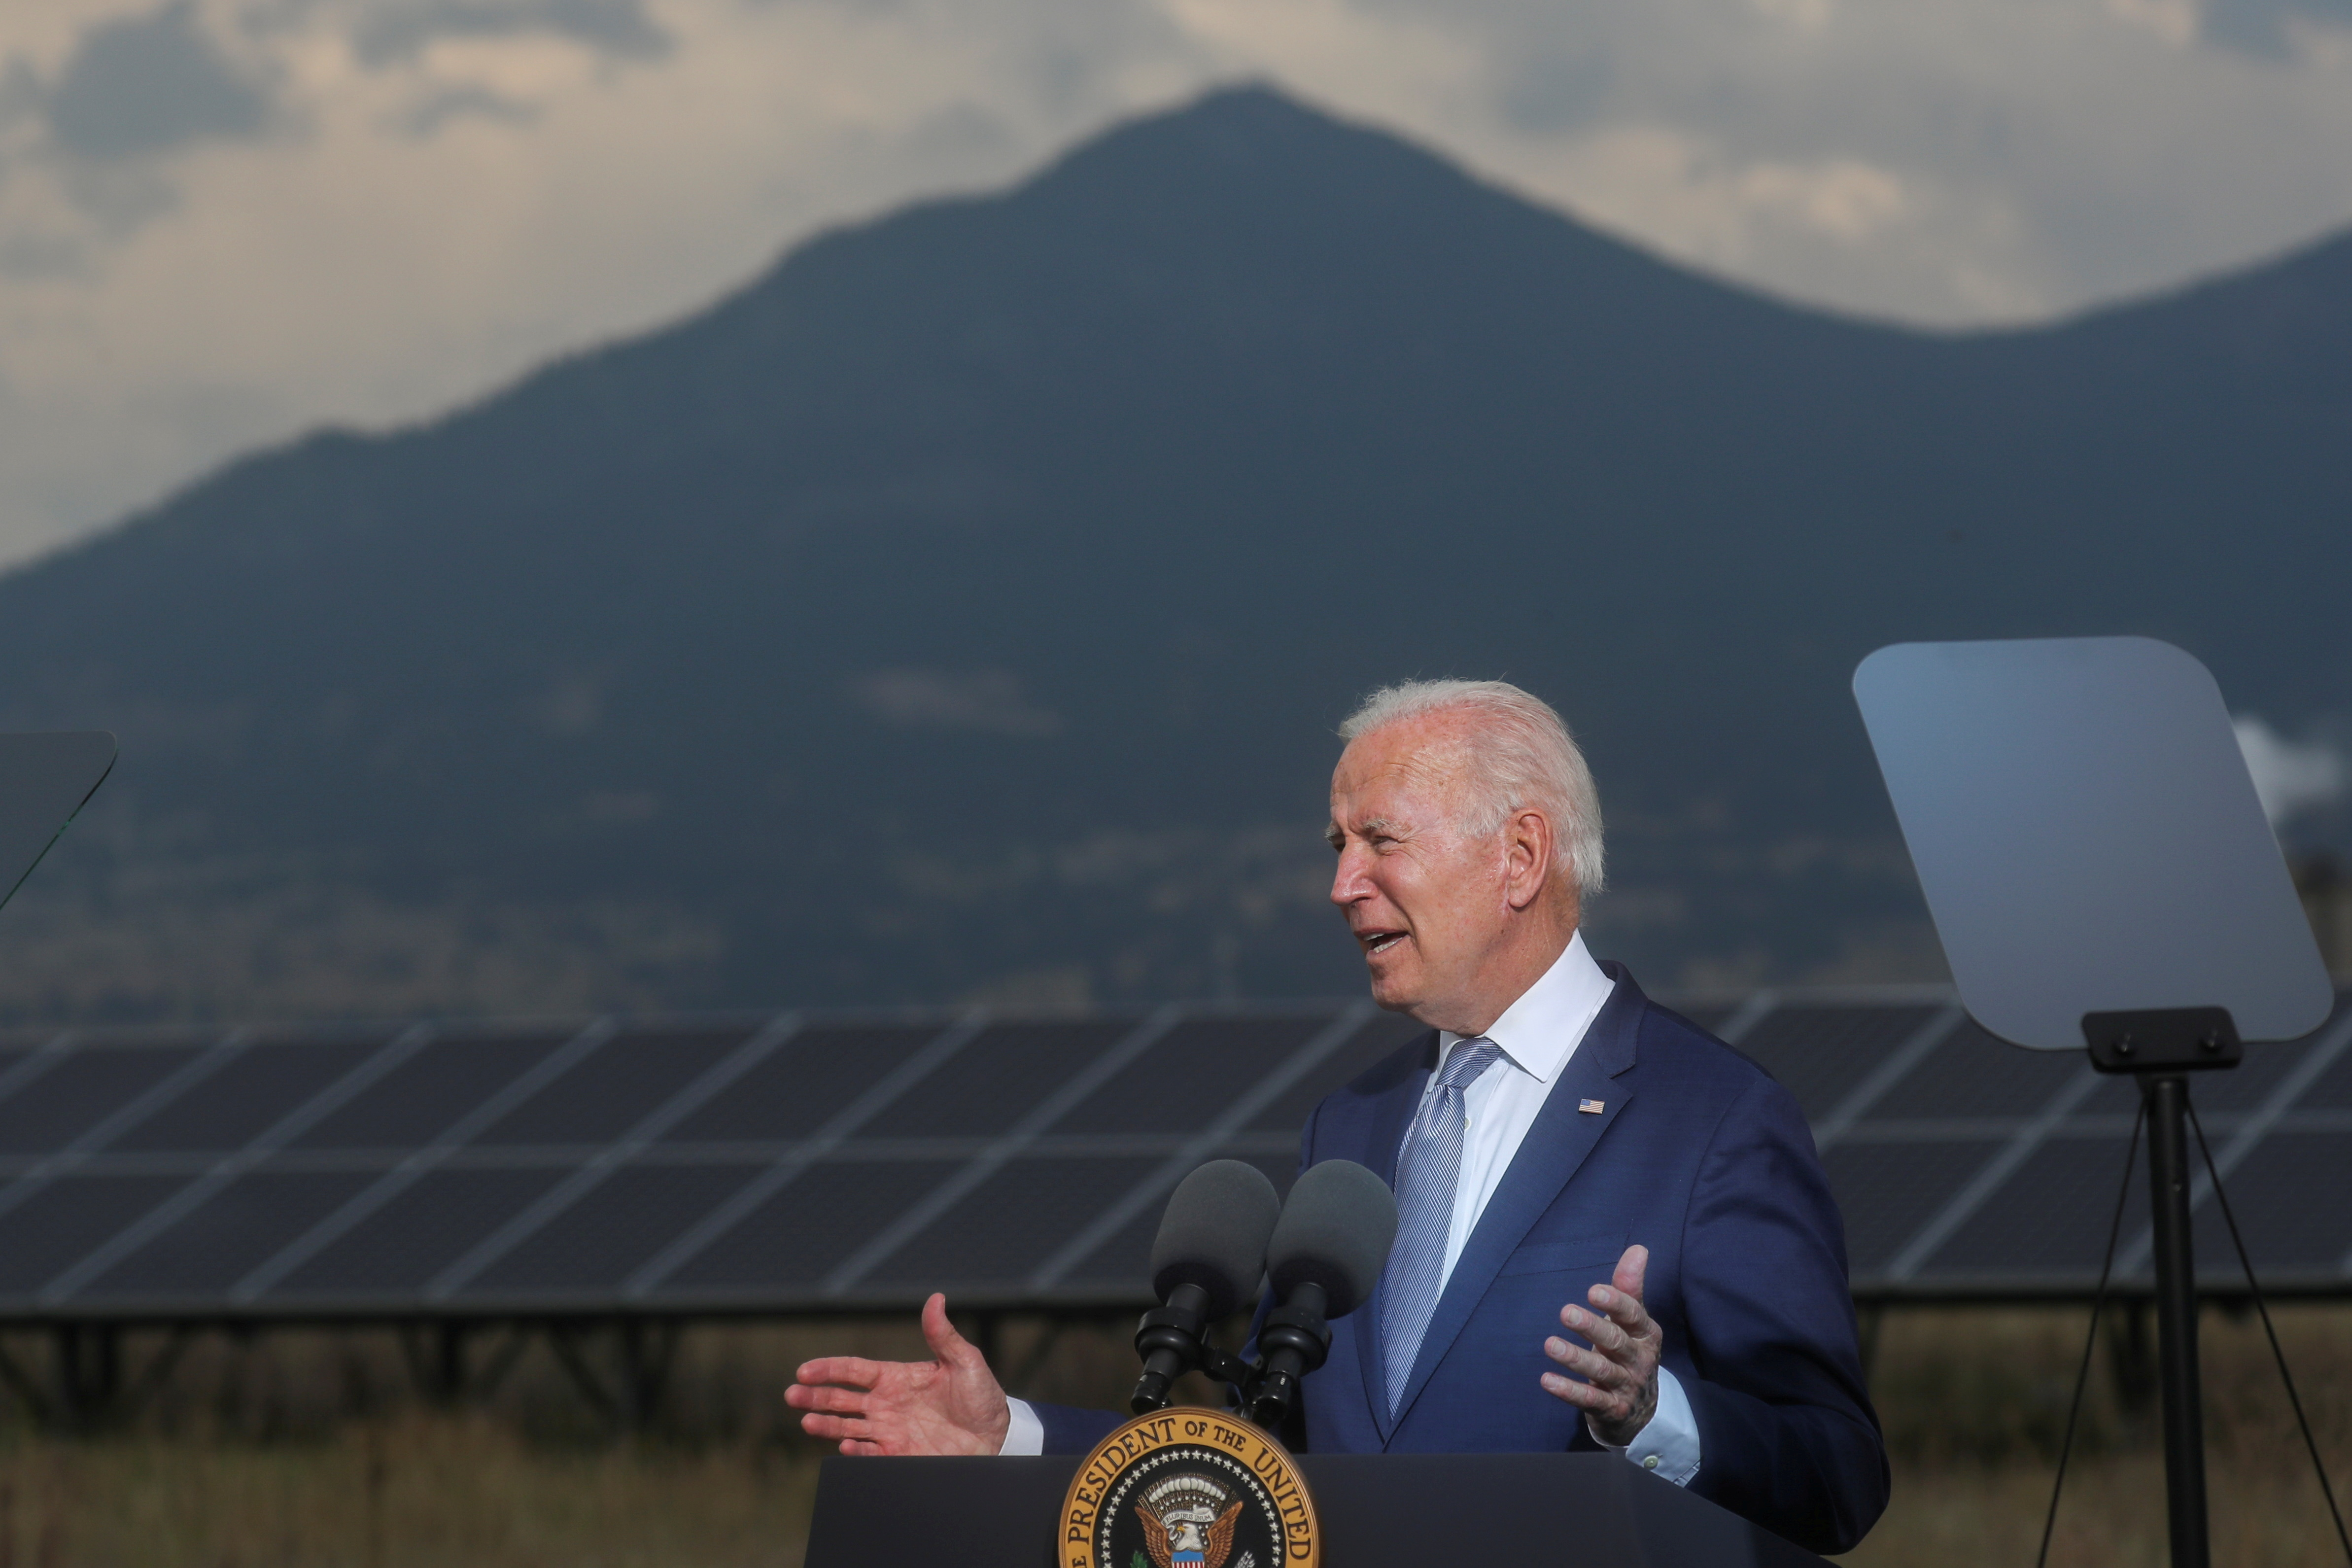 President Biden makes remarks to promote his infrastructure spending proposals during a visit to the Flatirons Campus Laboratories and Offices of the National Renewable Energy Laboratory (NREL), in Arvada, Colorado, September 14, 2021. REUTERS/Leah Millis